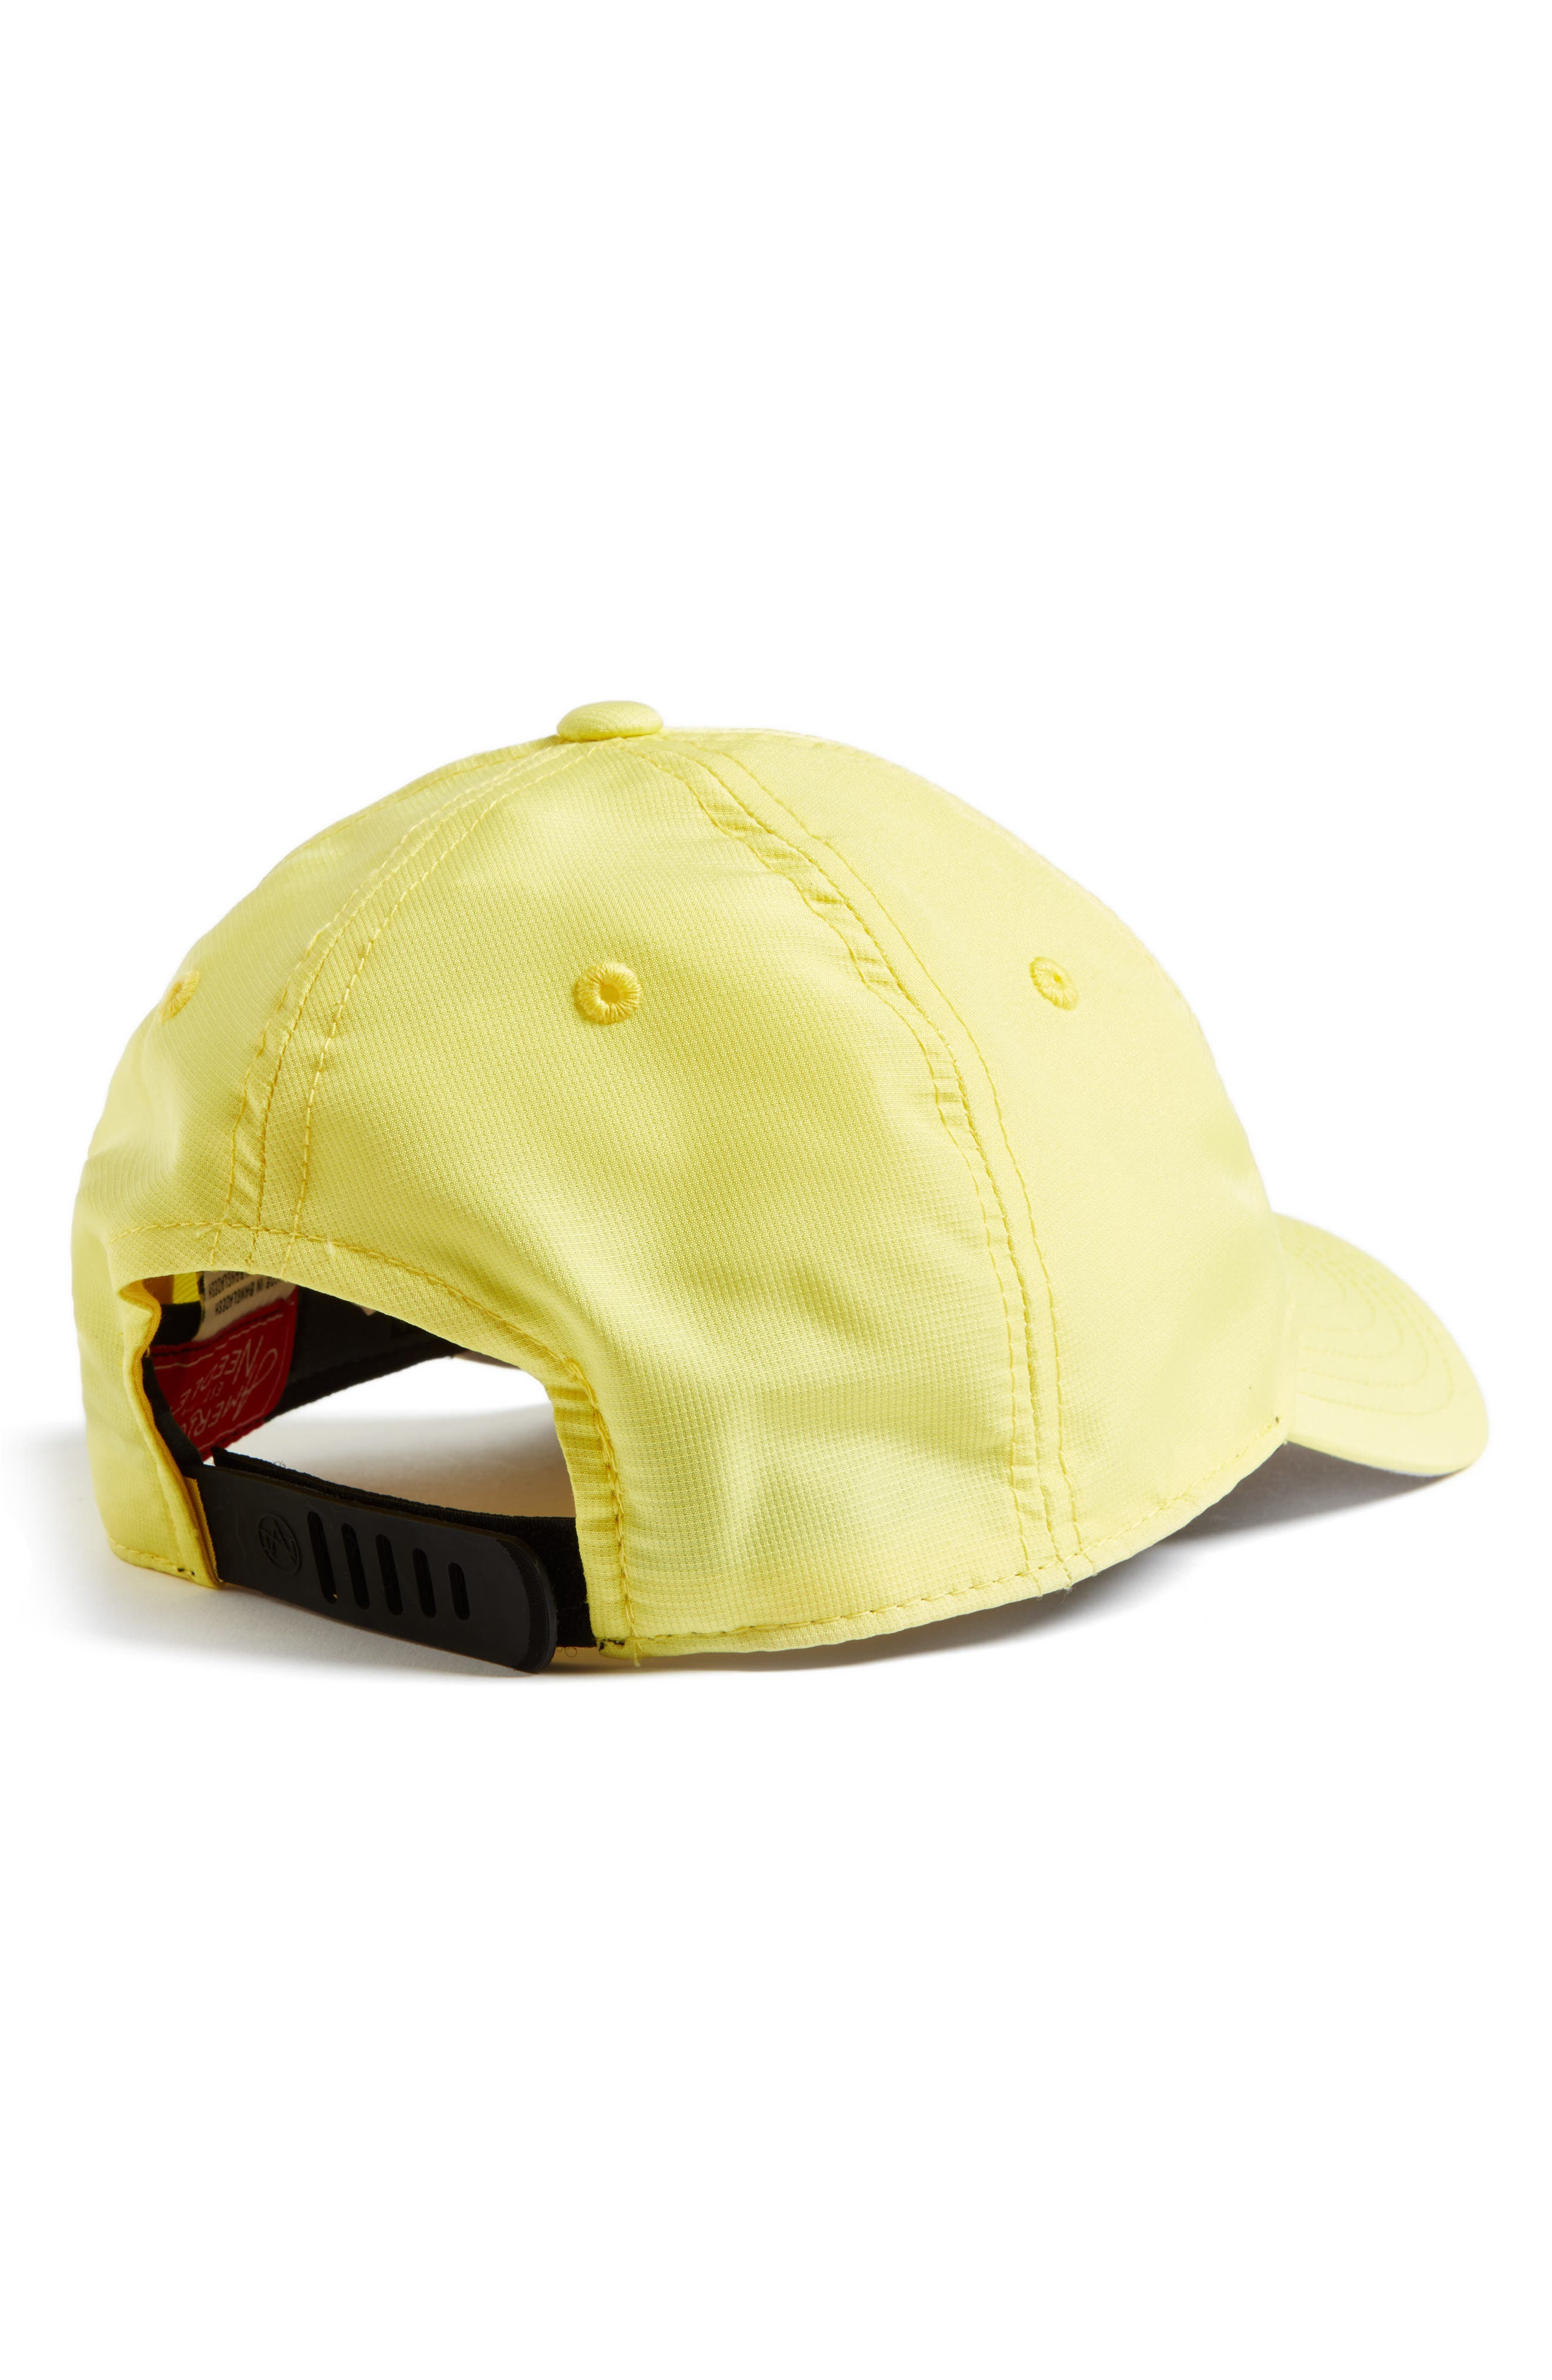 TKO Cap,                             Alternate thumbnail 2, color,                             YELLOW